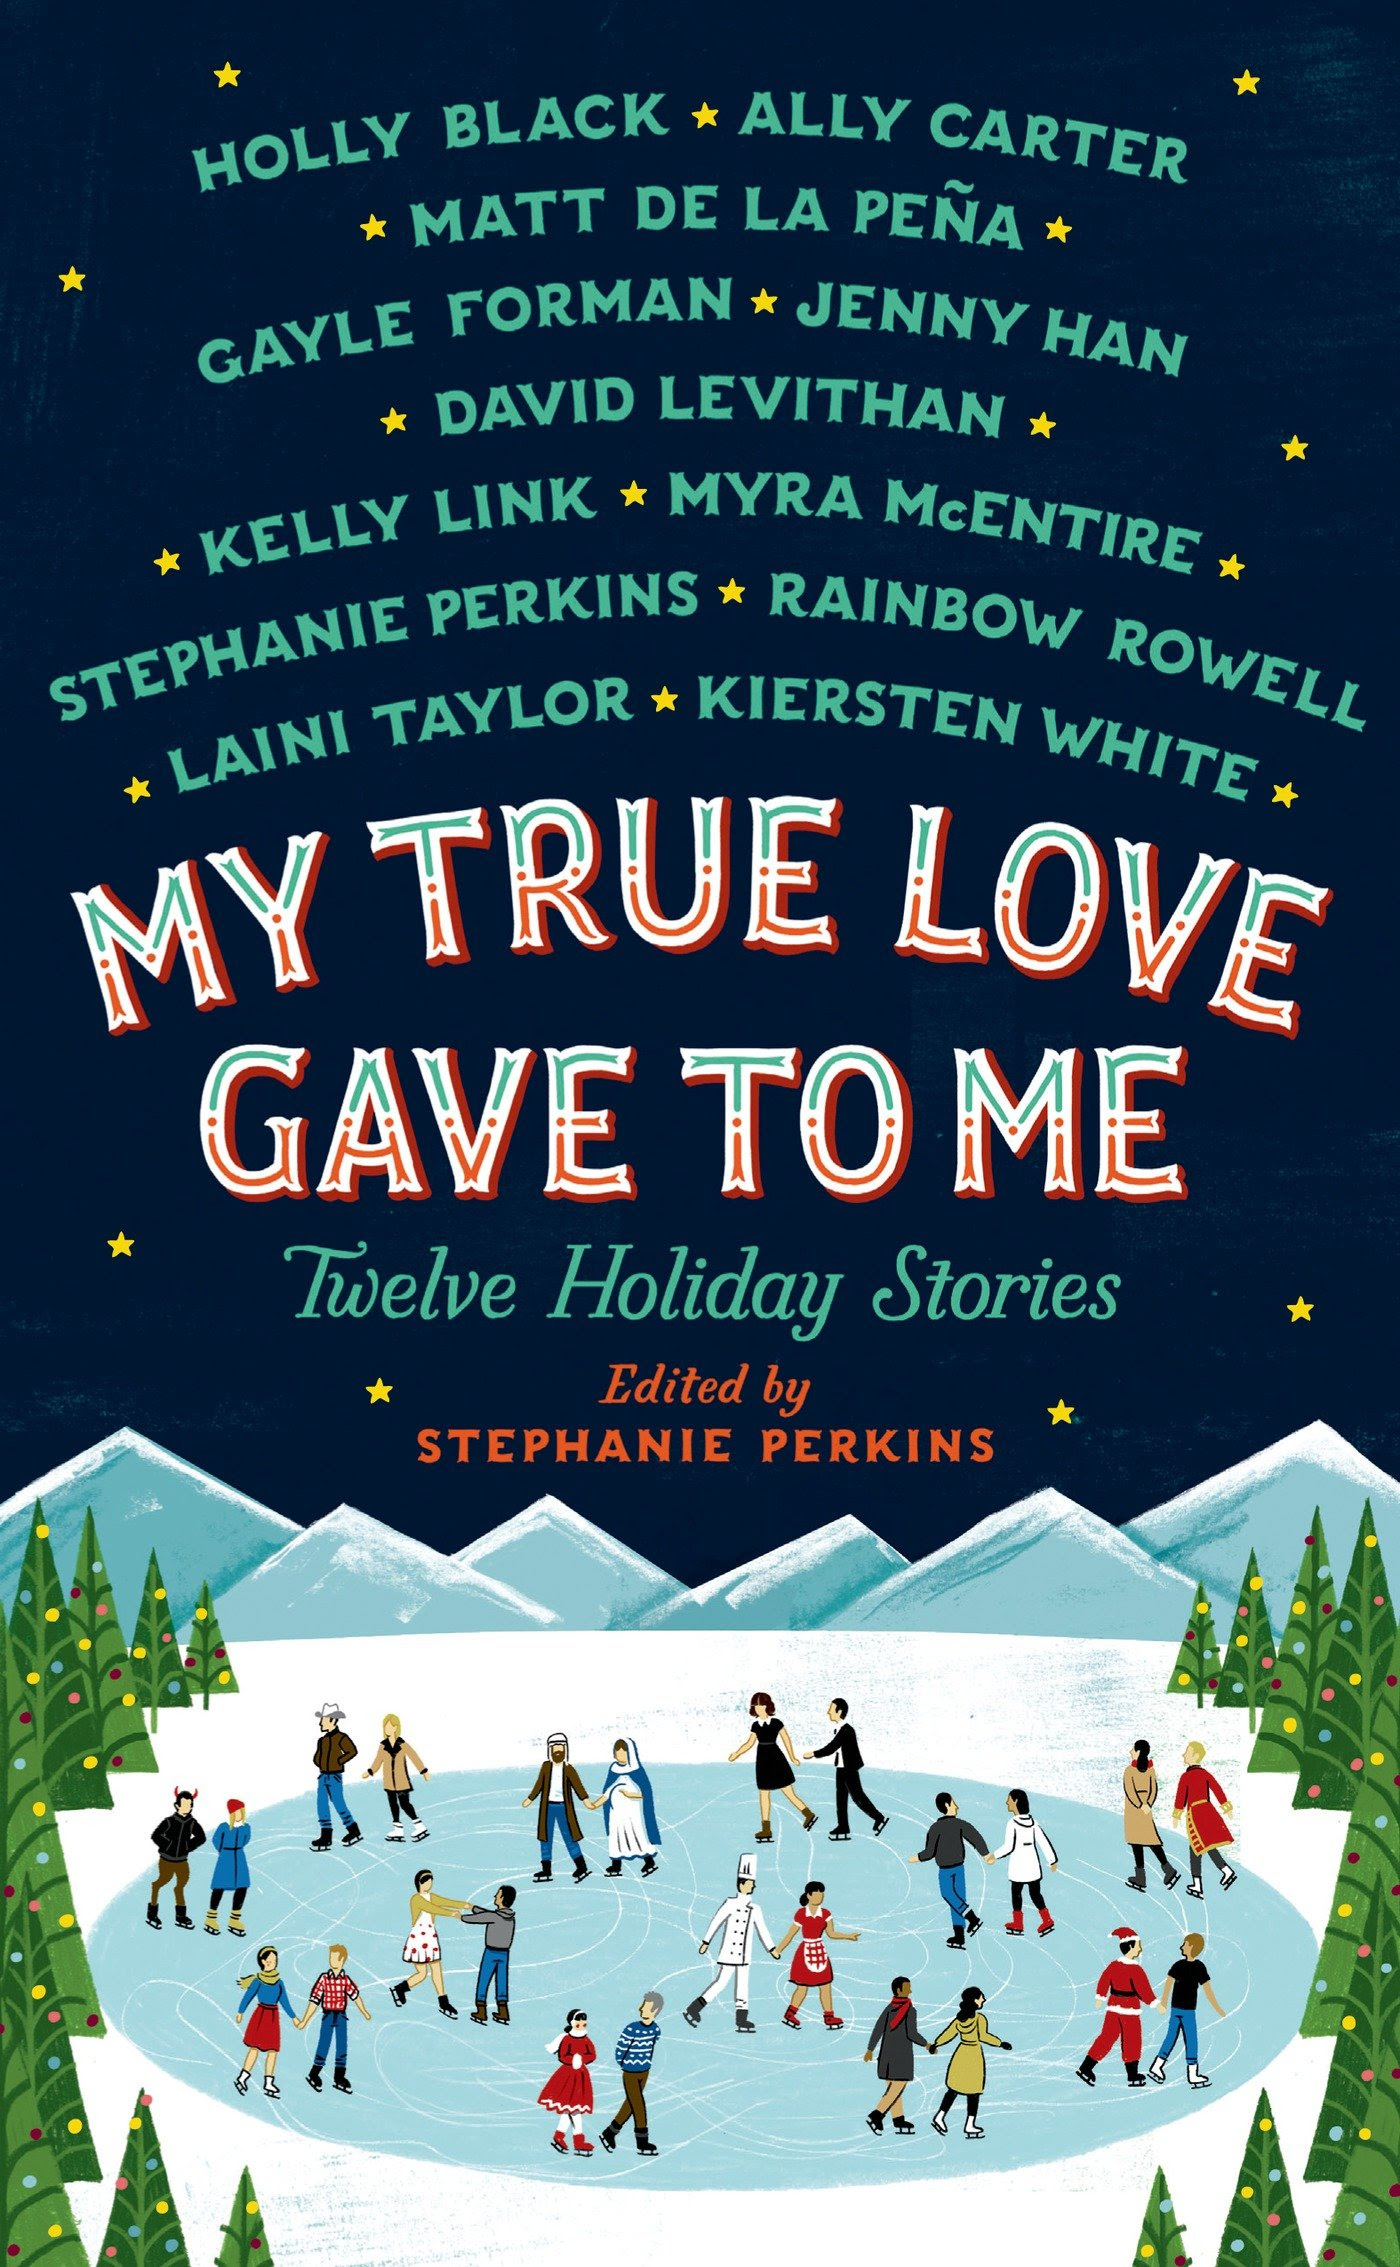 My-True-Love-Gave-To-Me-Twelve-Holiday-Stories